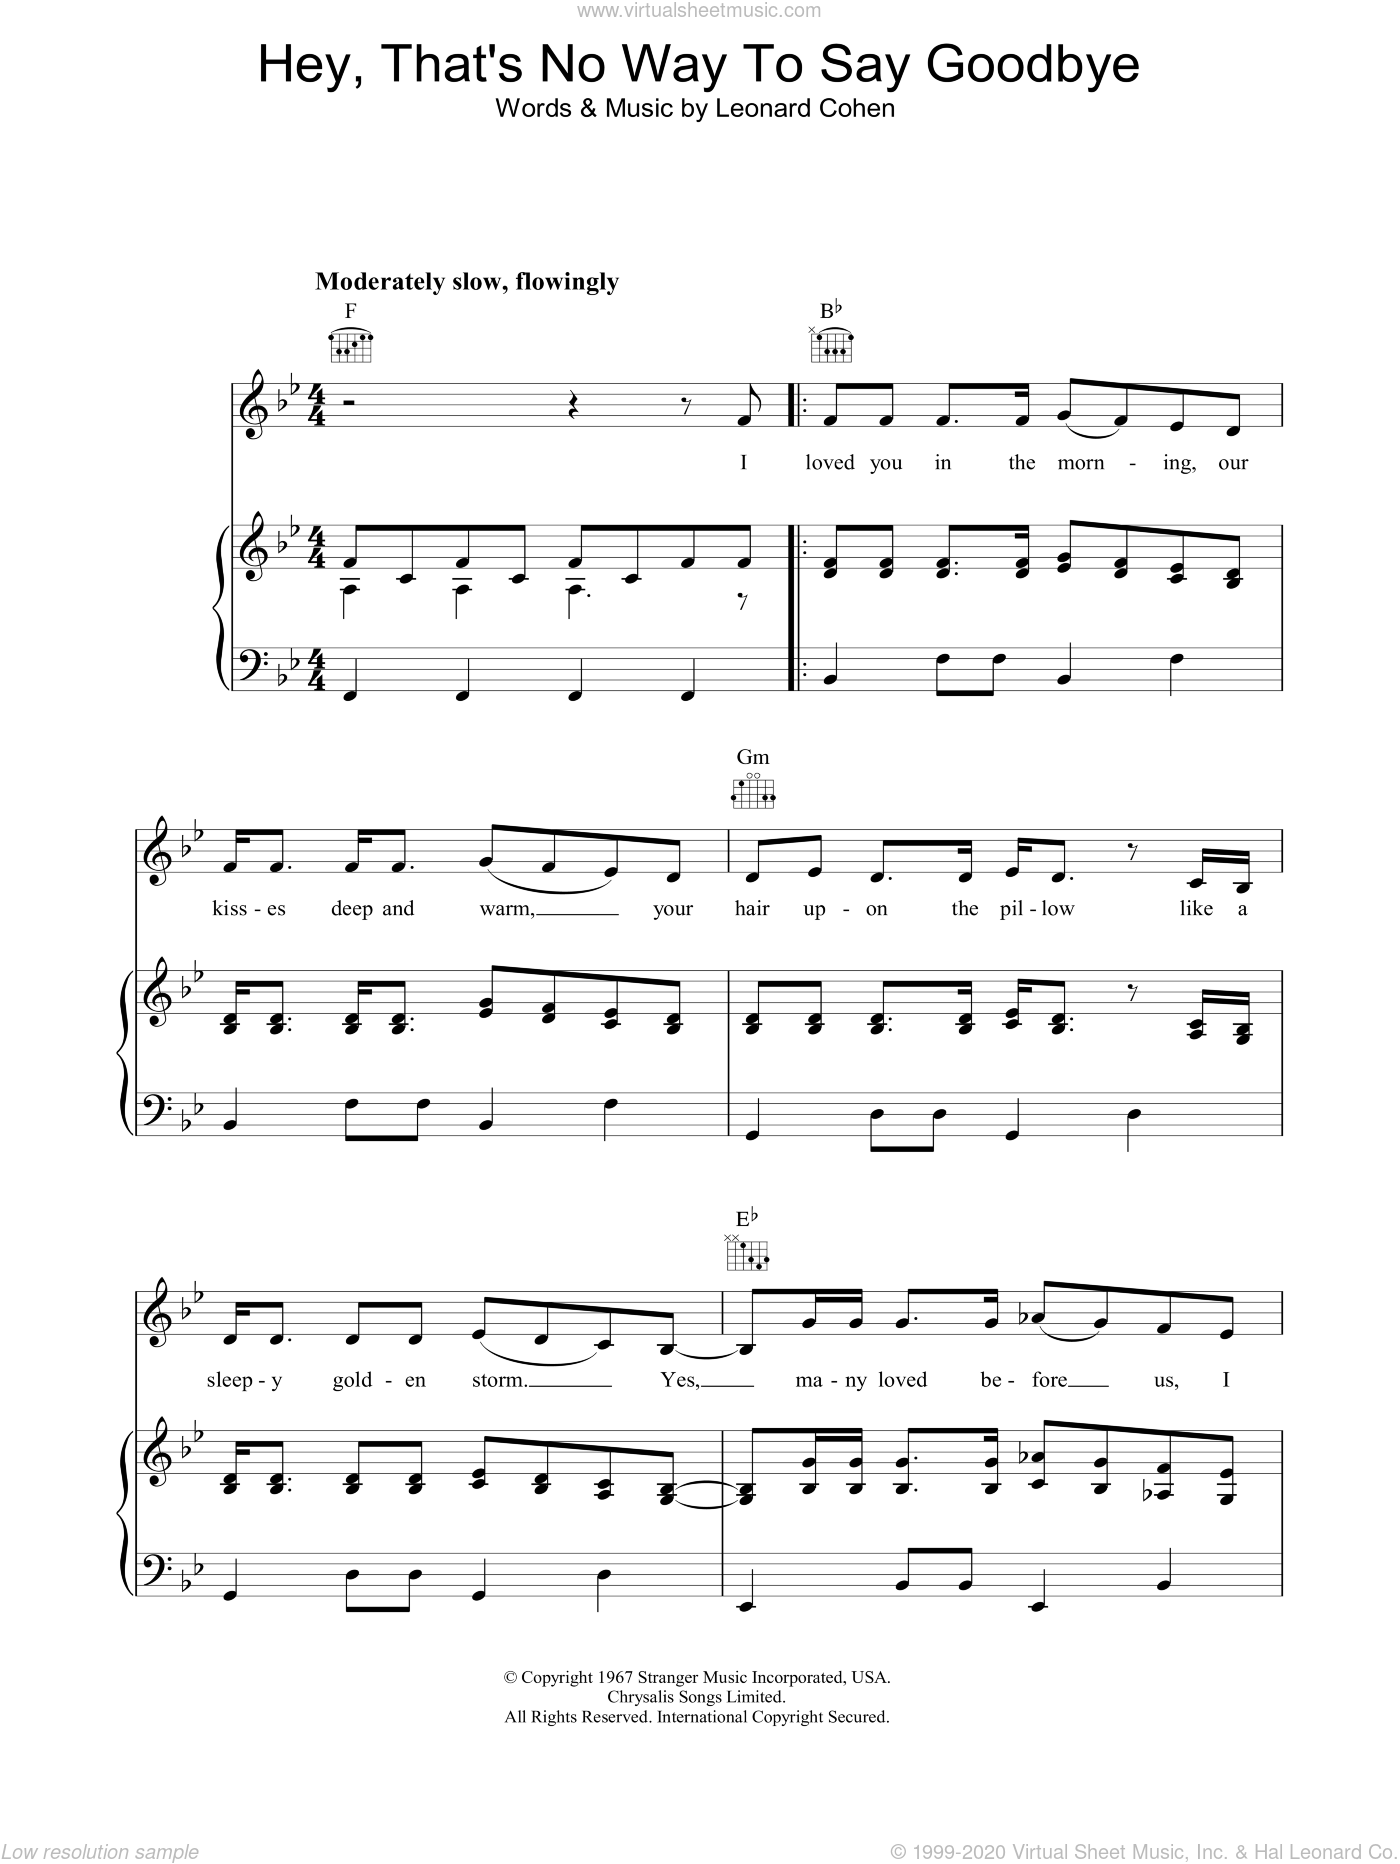 Hey, That's No Way To Say Goodbye sheet music for voice, piano or guitar by Leonard Cohen. Score Image Preview.